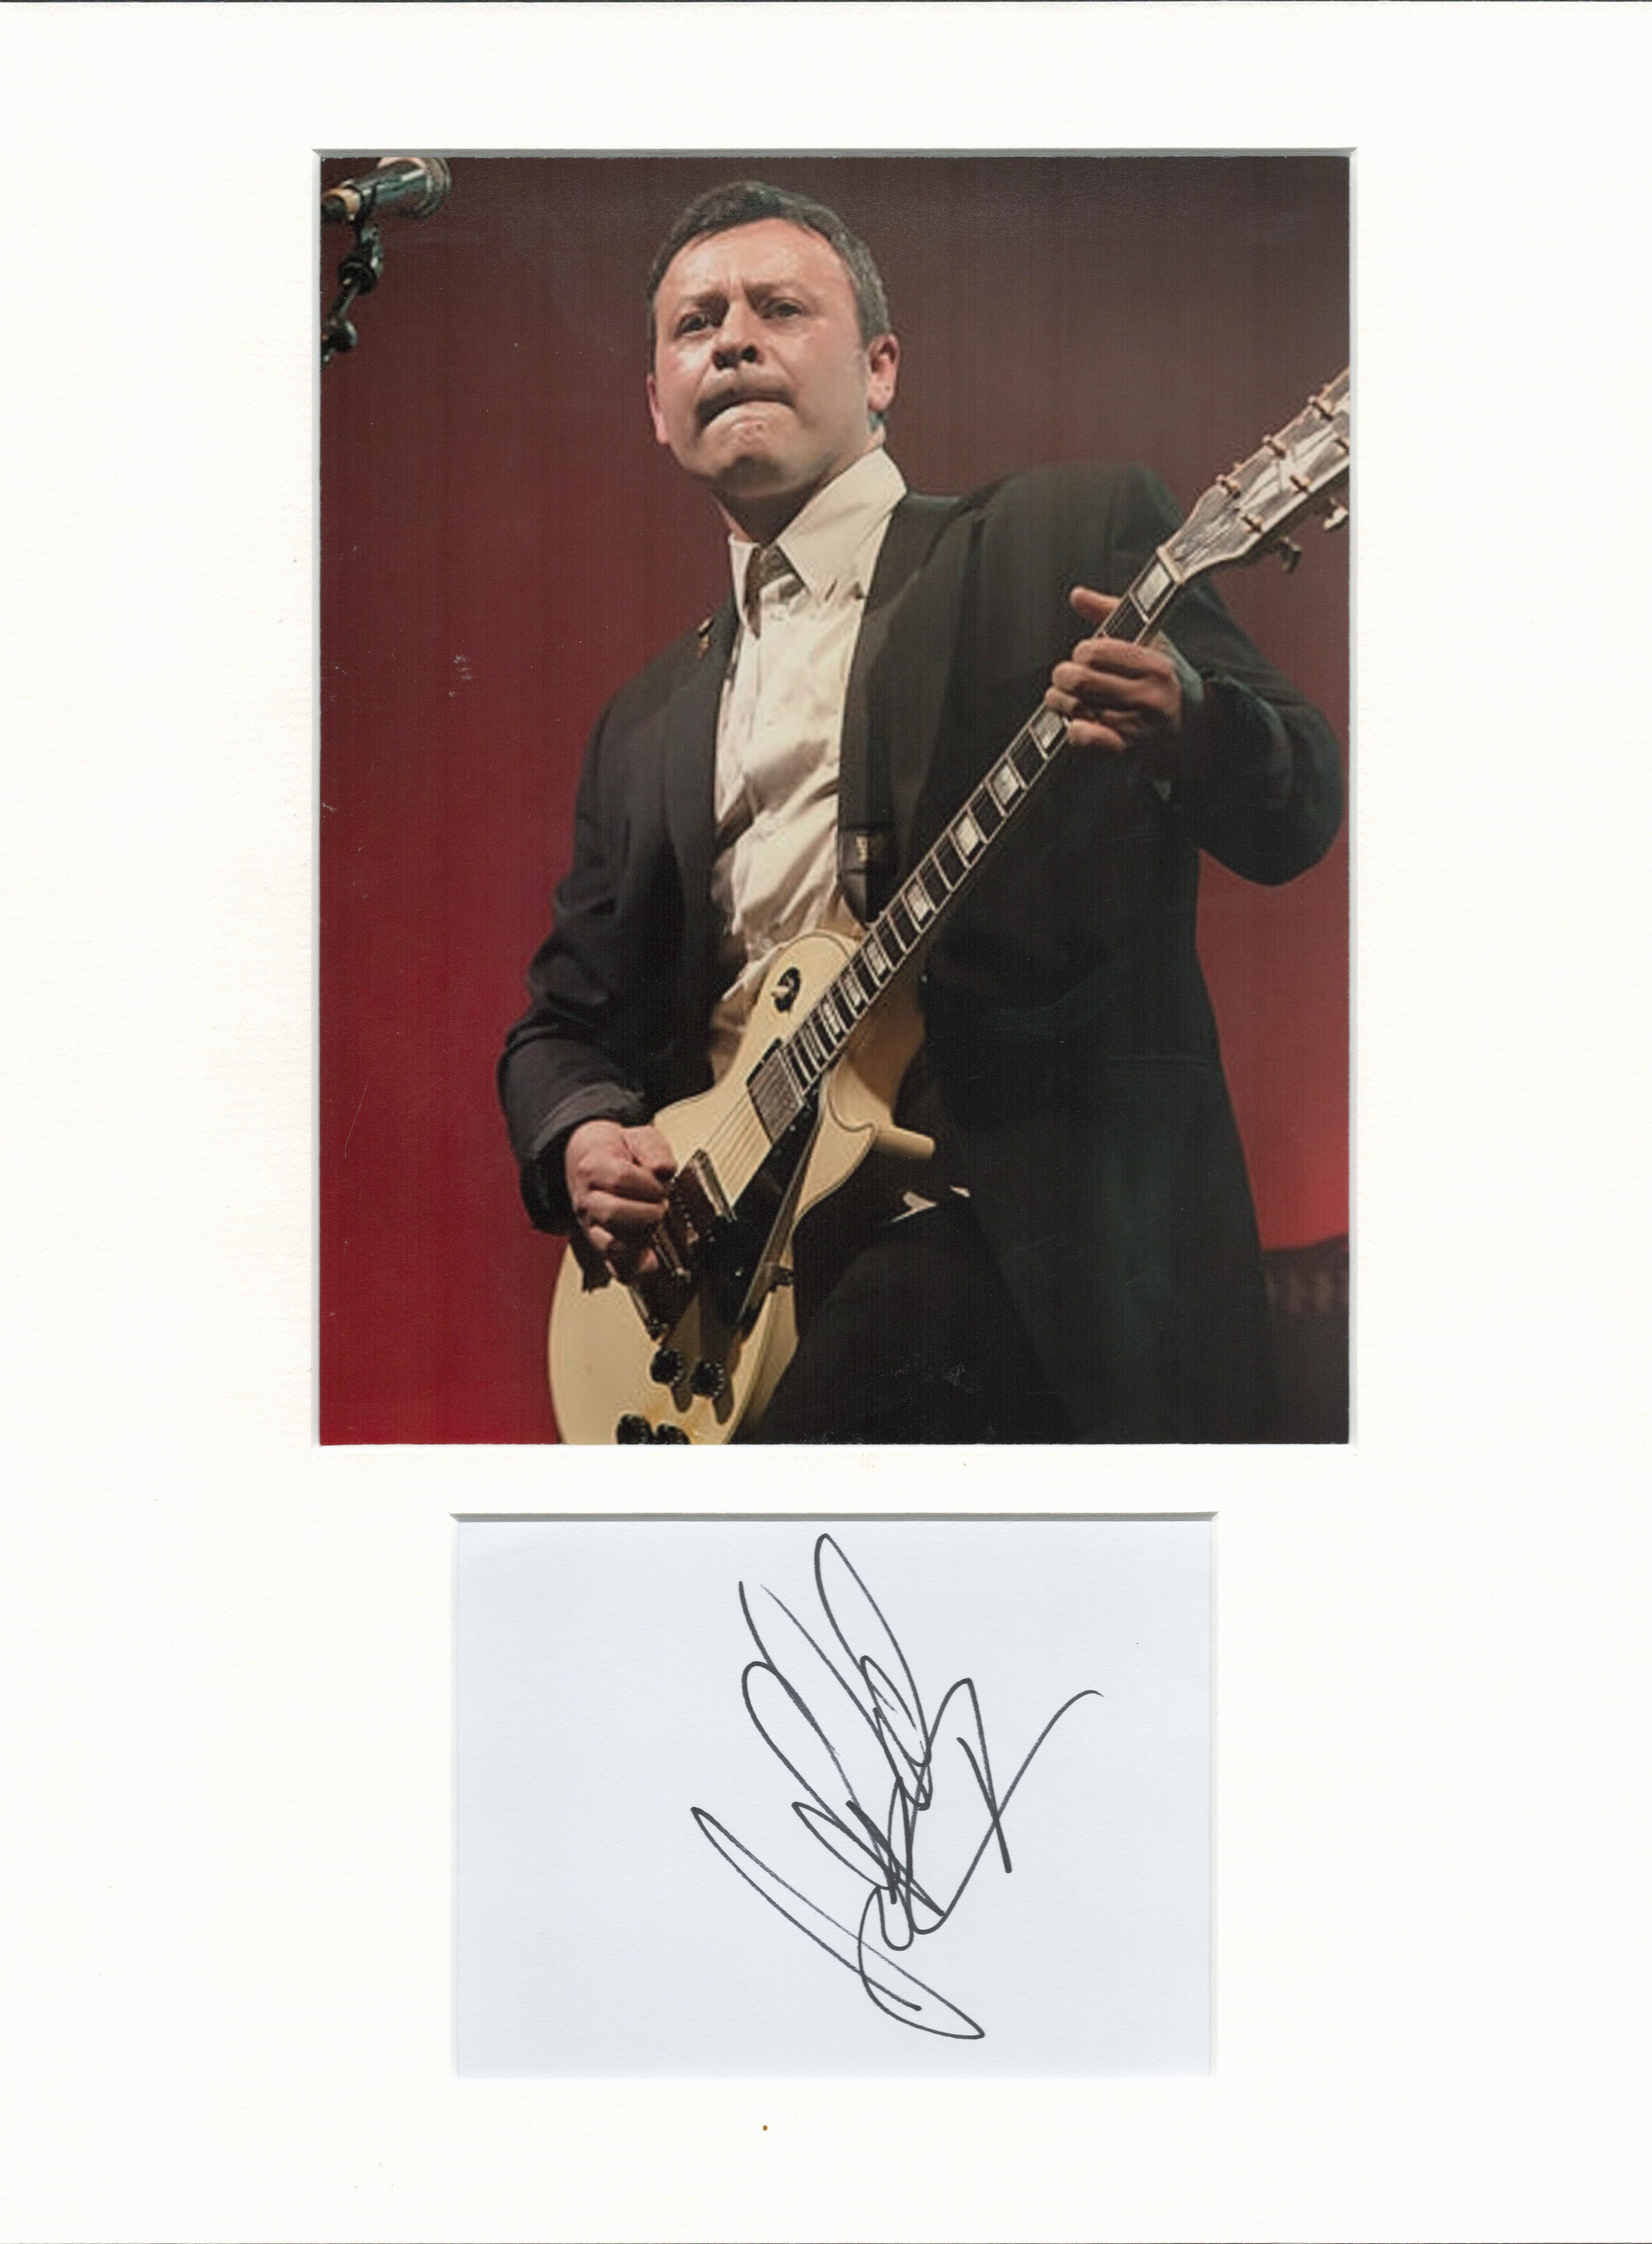 James Dean Bradfield signature piece in autograph presentation. Mounted with photograph to approx.